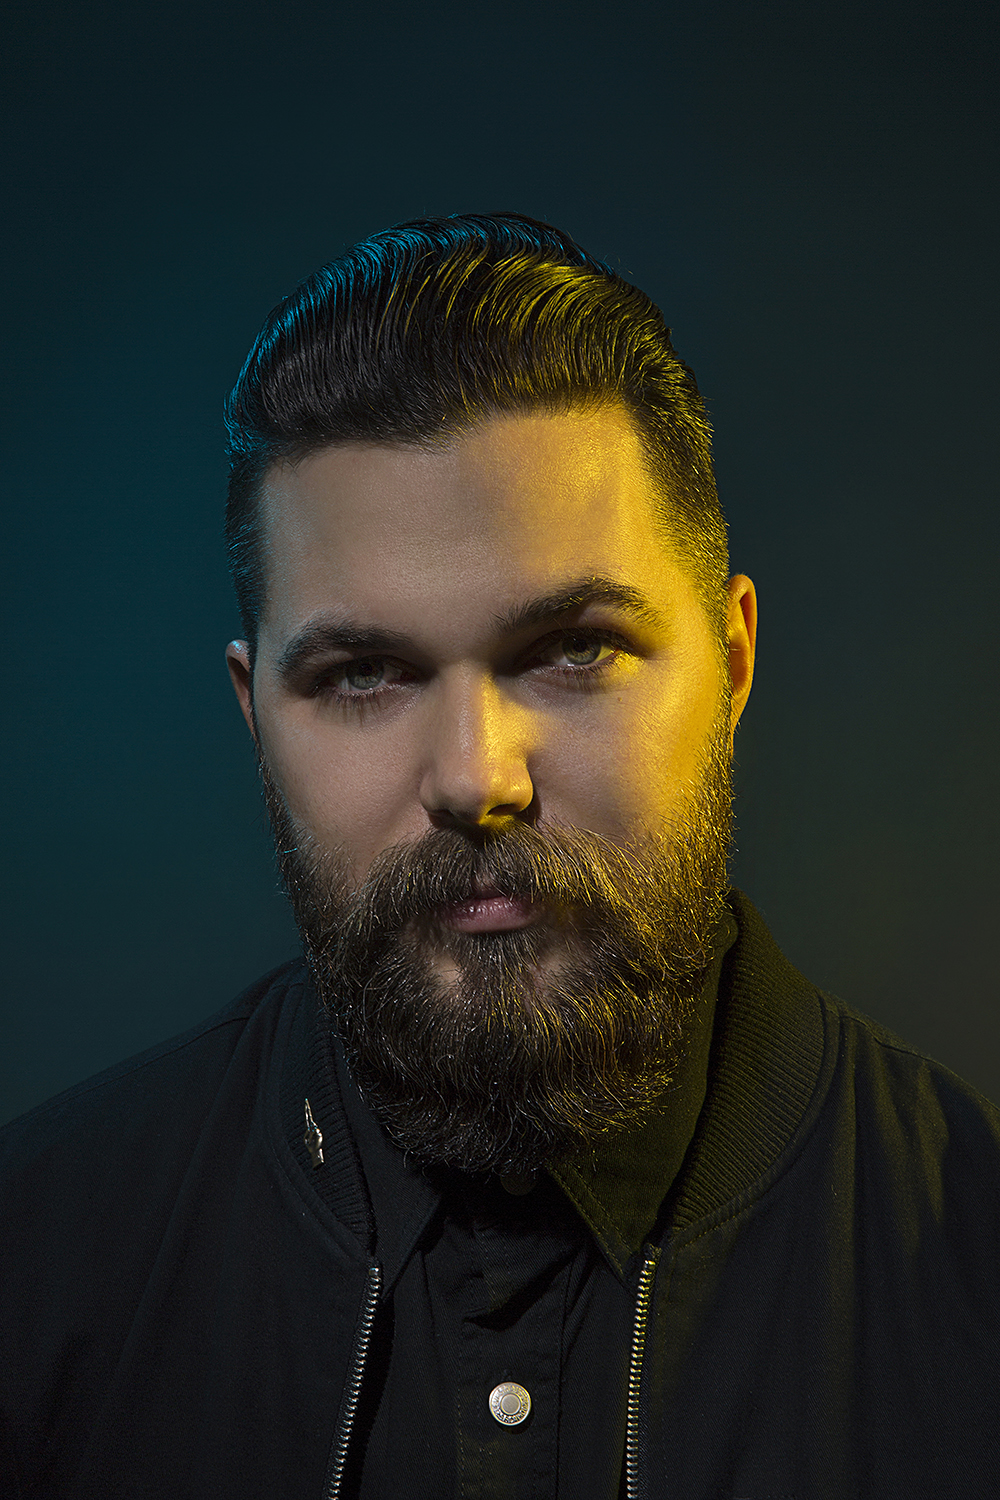 Director of The Witch, Robert Eggers.